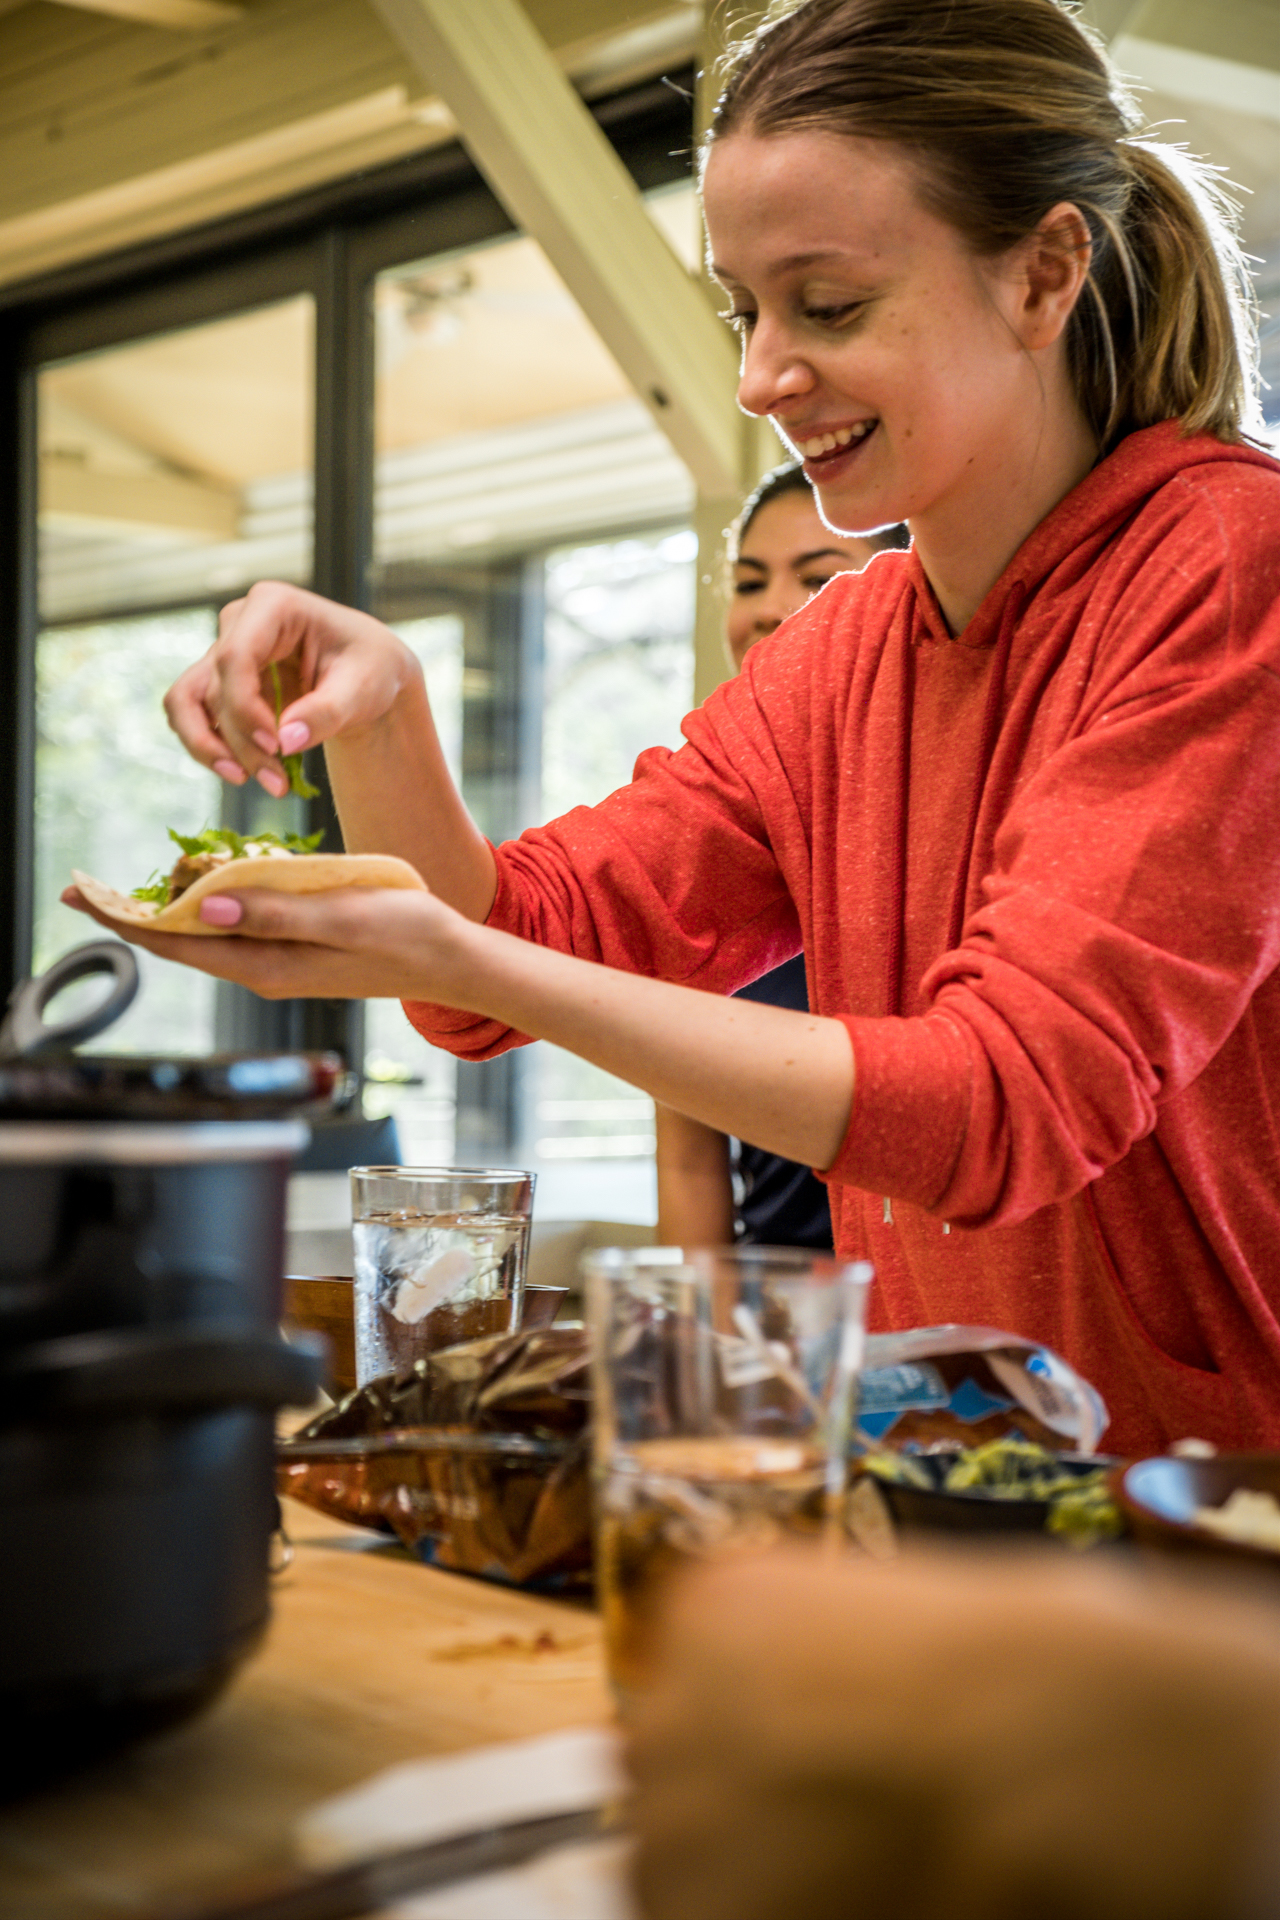 Taylor Vieger Food Lifestyle Photography 2019-55.jpg